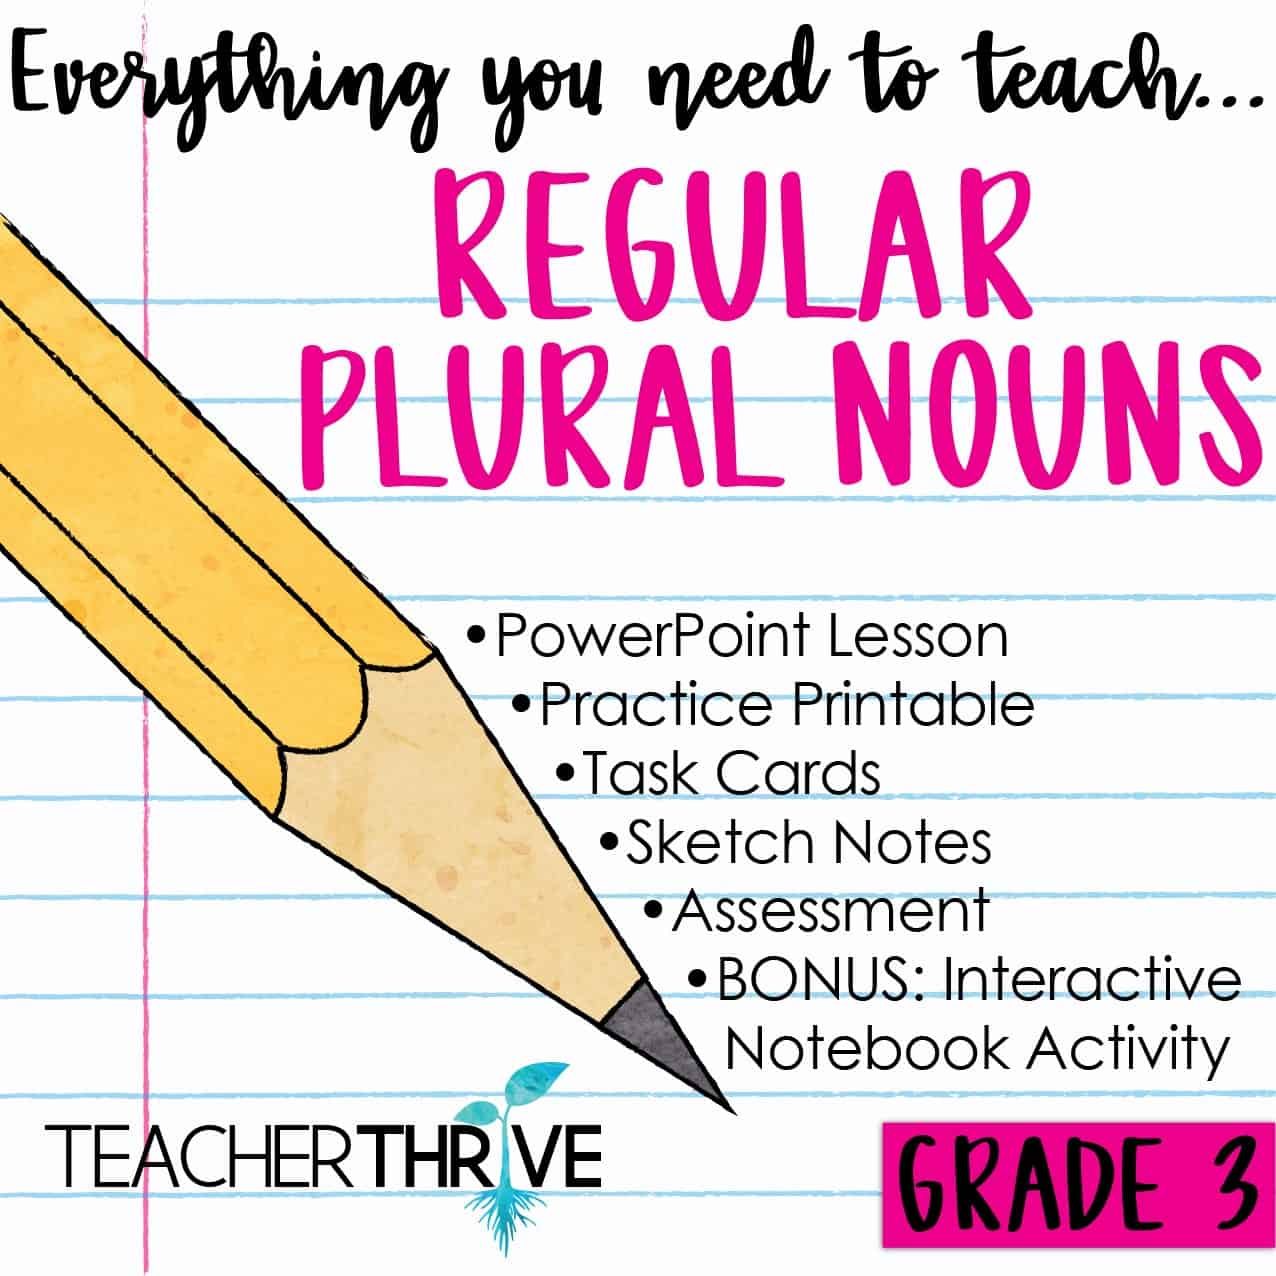 Regular Plural Nouns